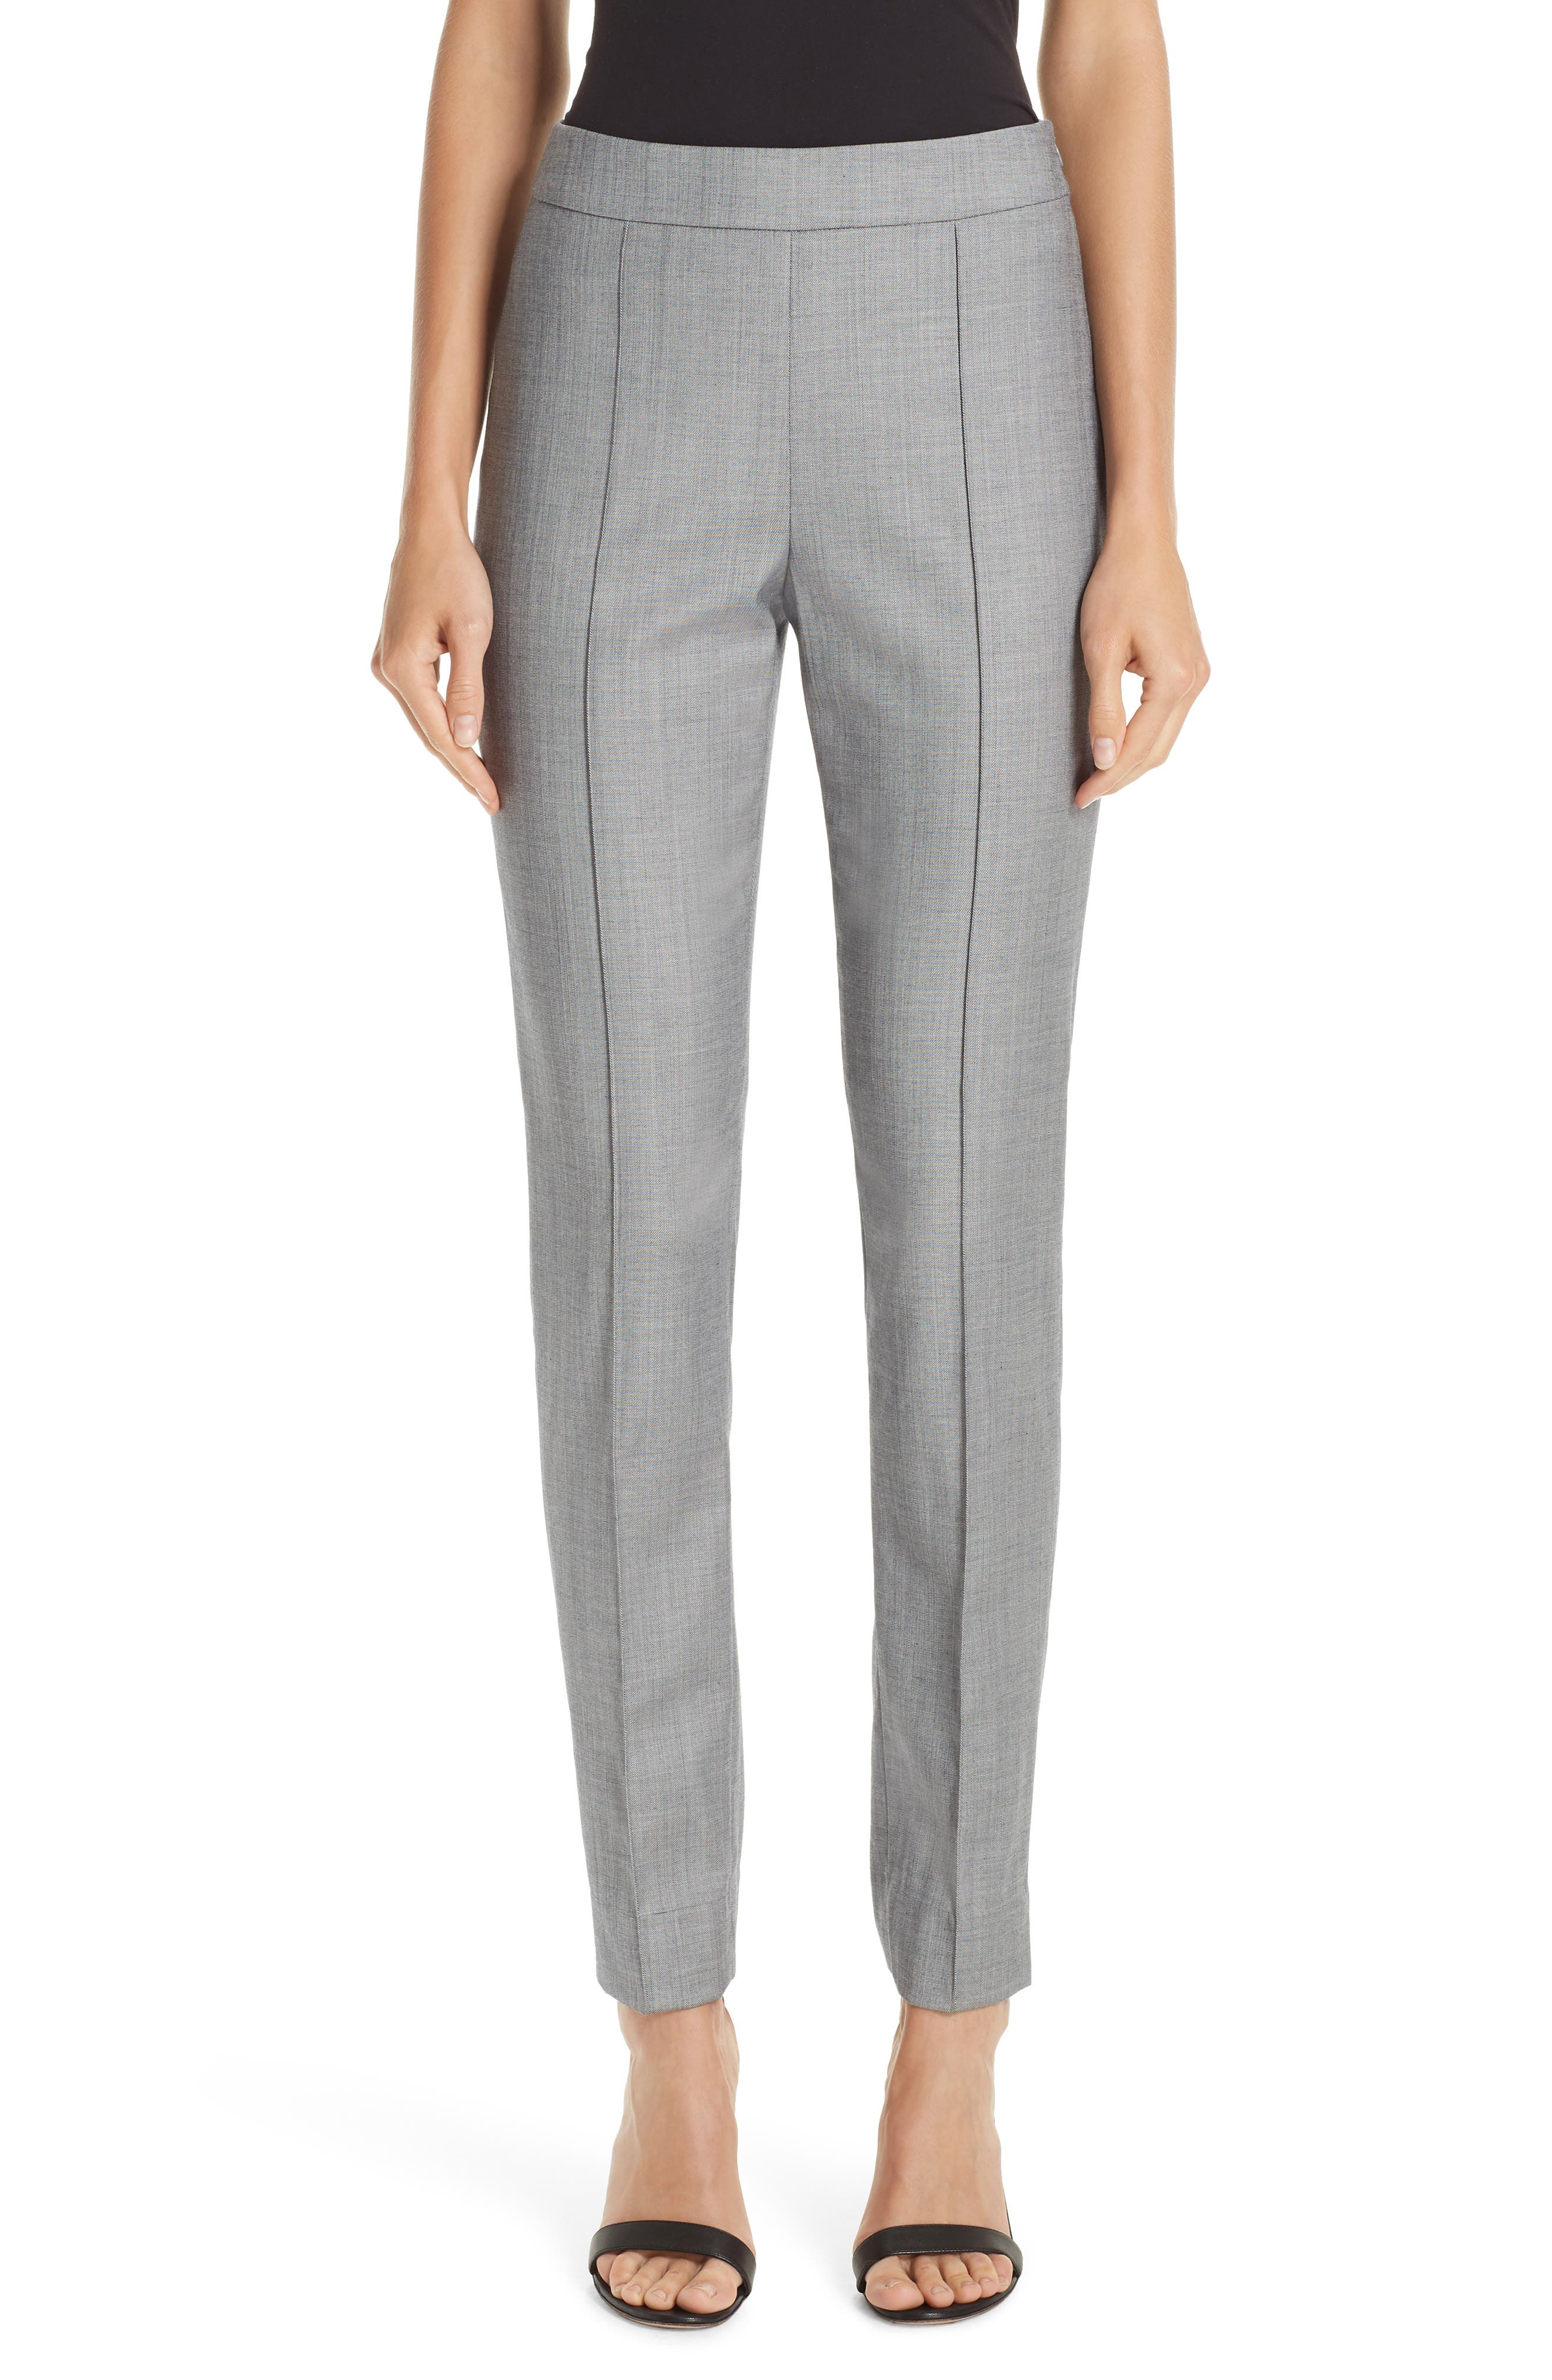 Sharkskin Stretch Wool Blend Skinny Ankle Pants,                             Main thumbnail 1, color,                             GREY MULTI